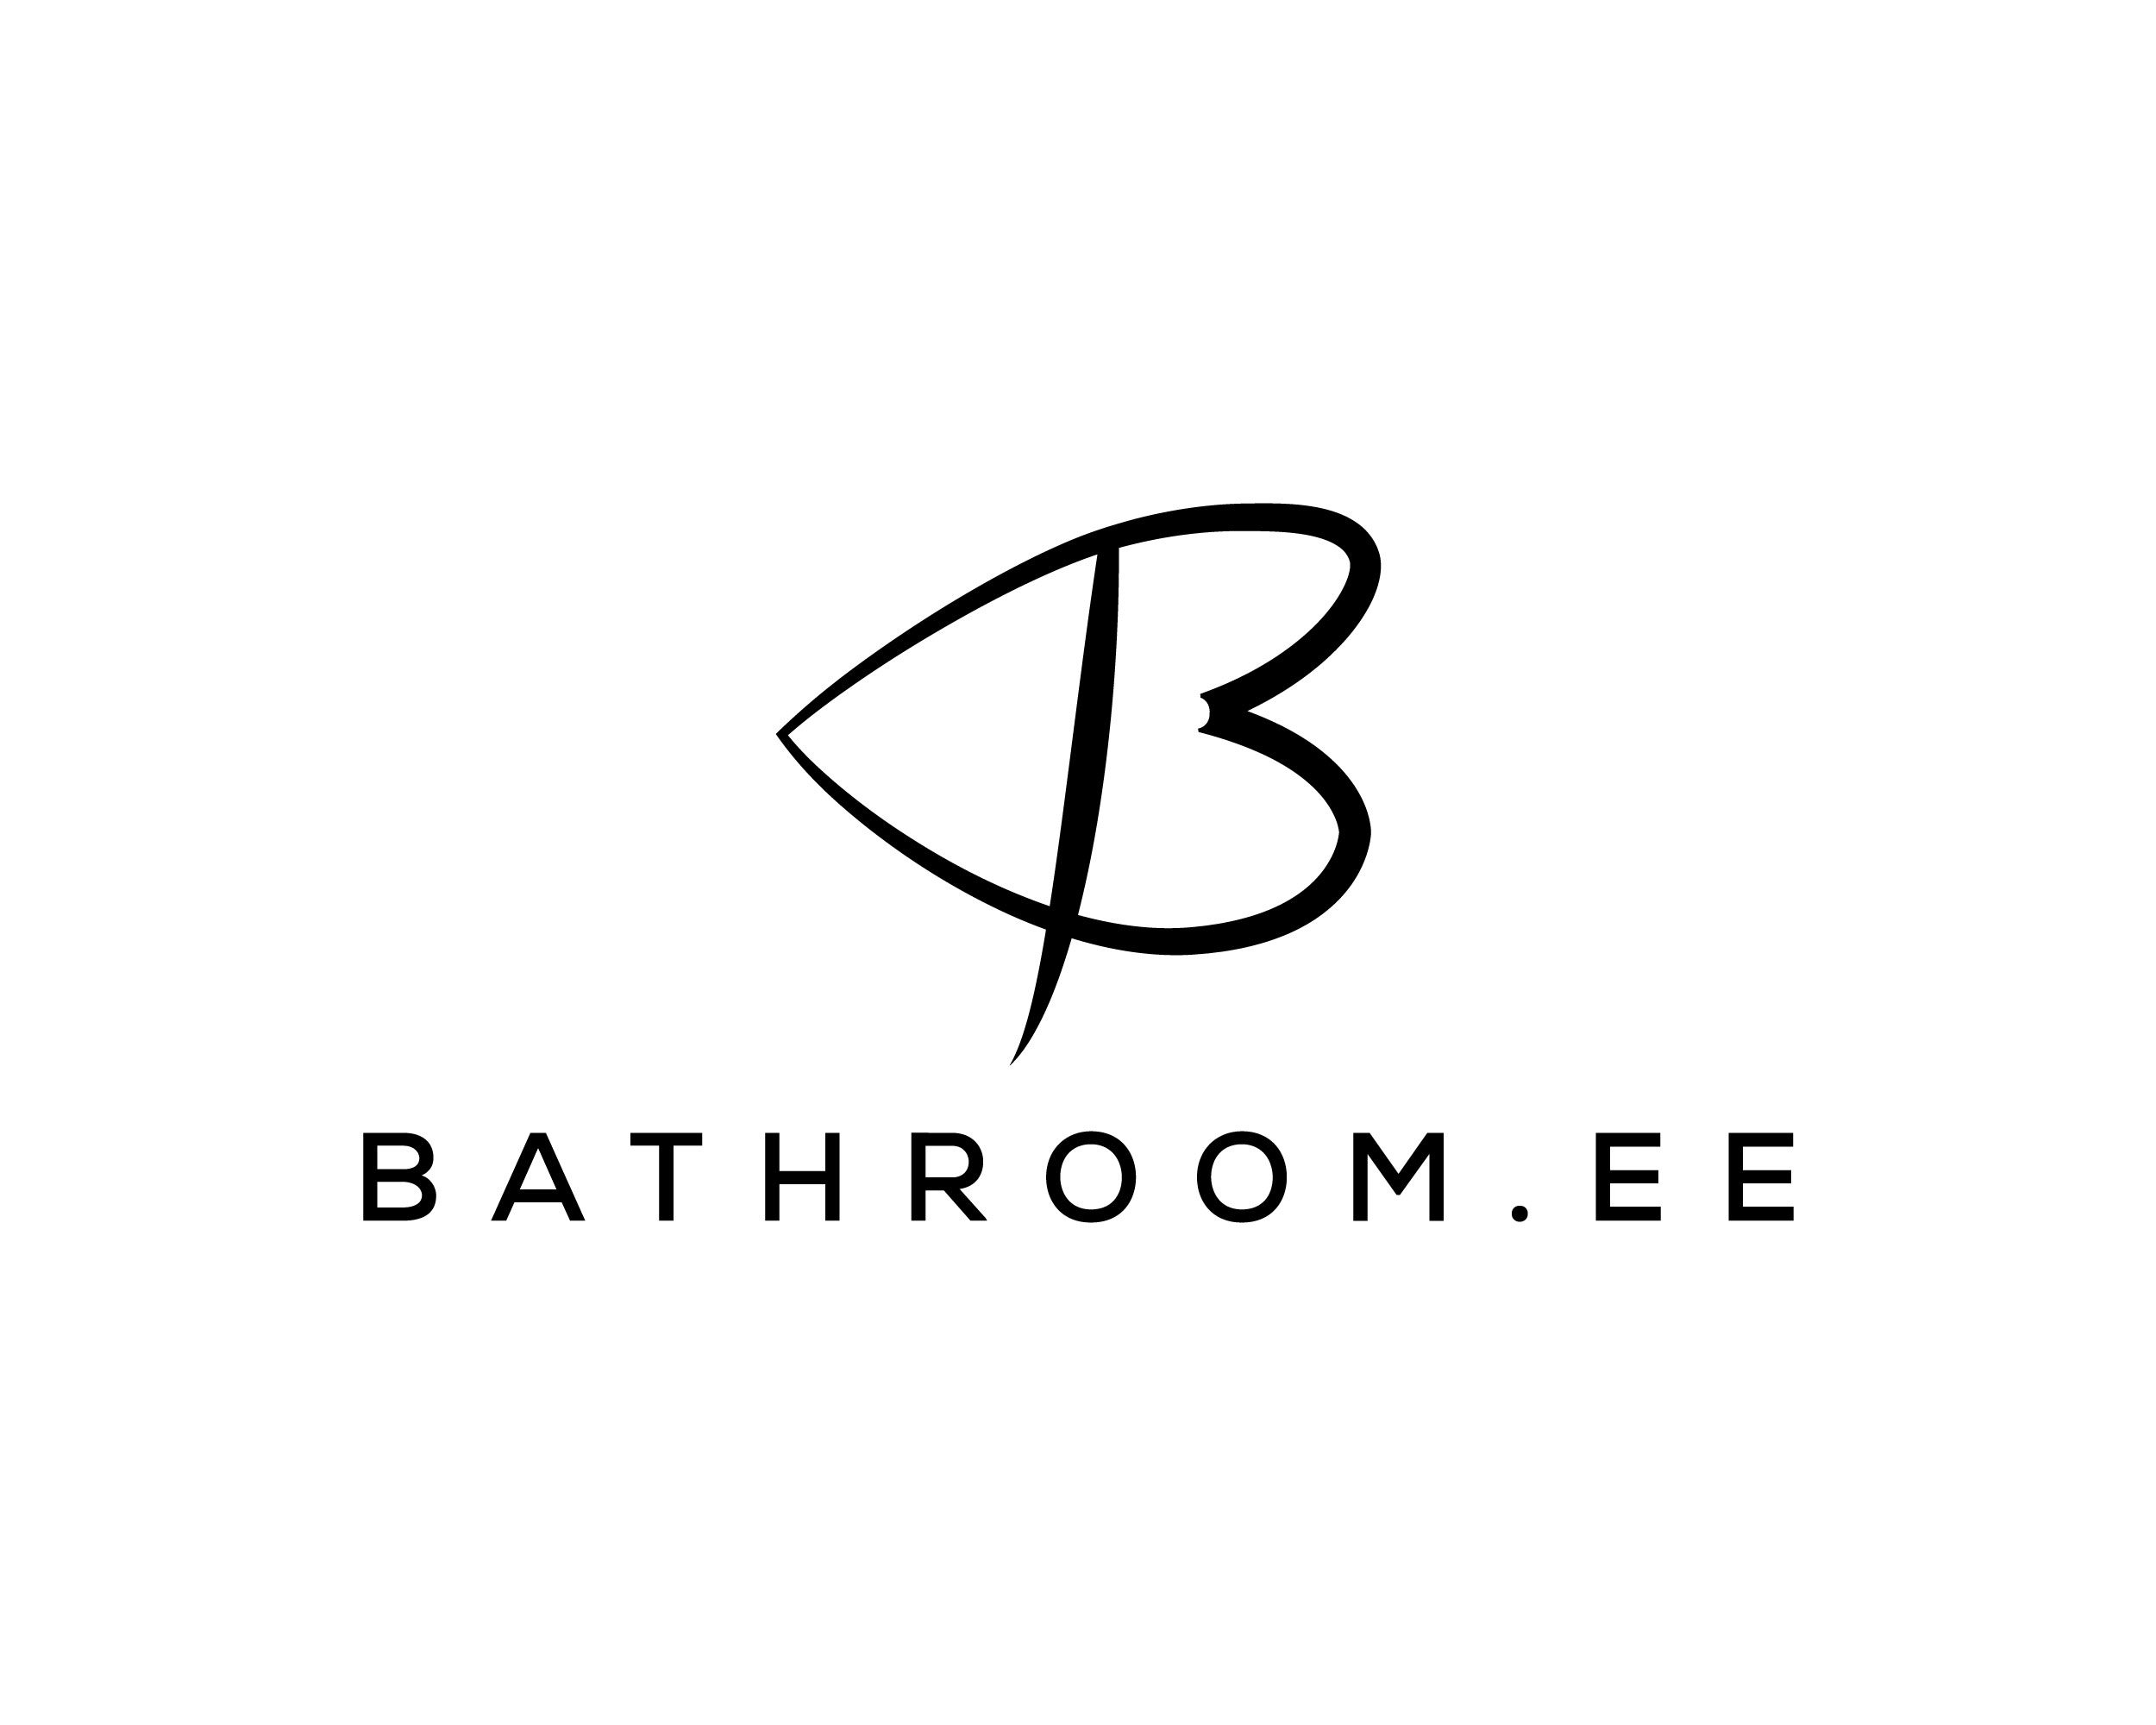 Bathroom.ee